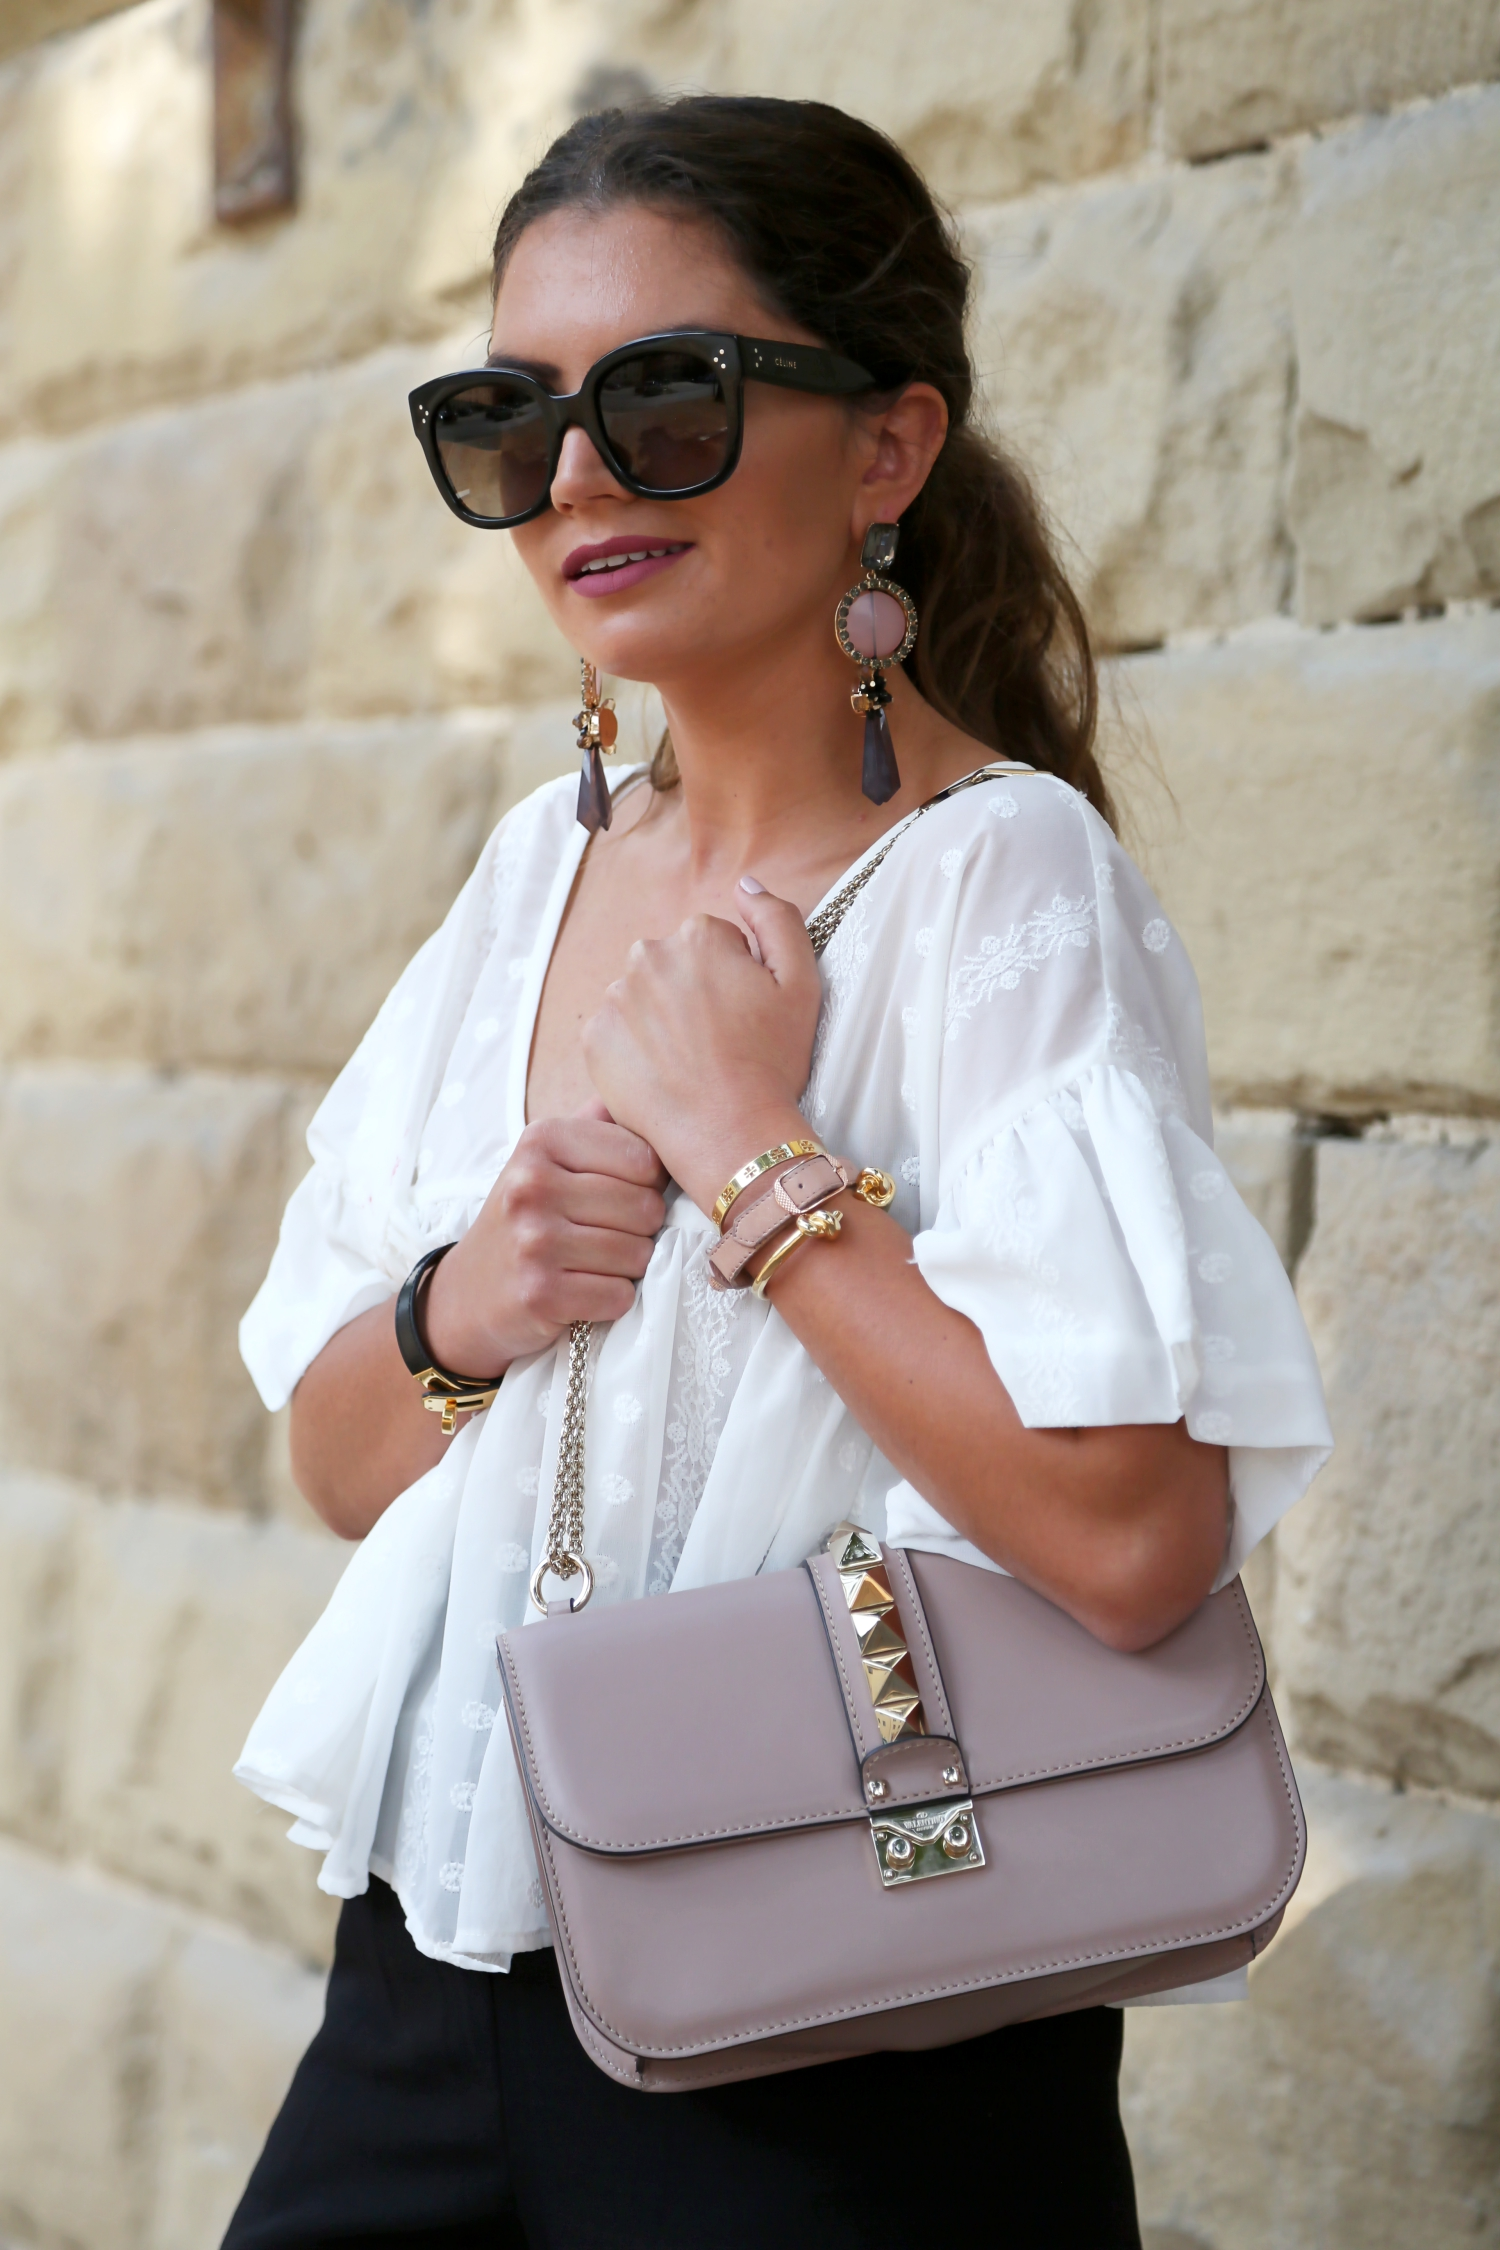 outfit-details-valentino-glam-lock-bag-celine-new-audrey-sunglasses